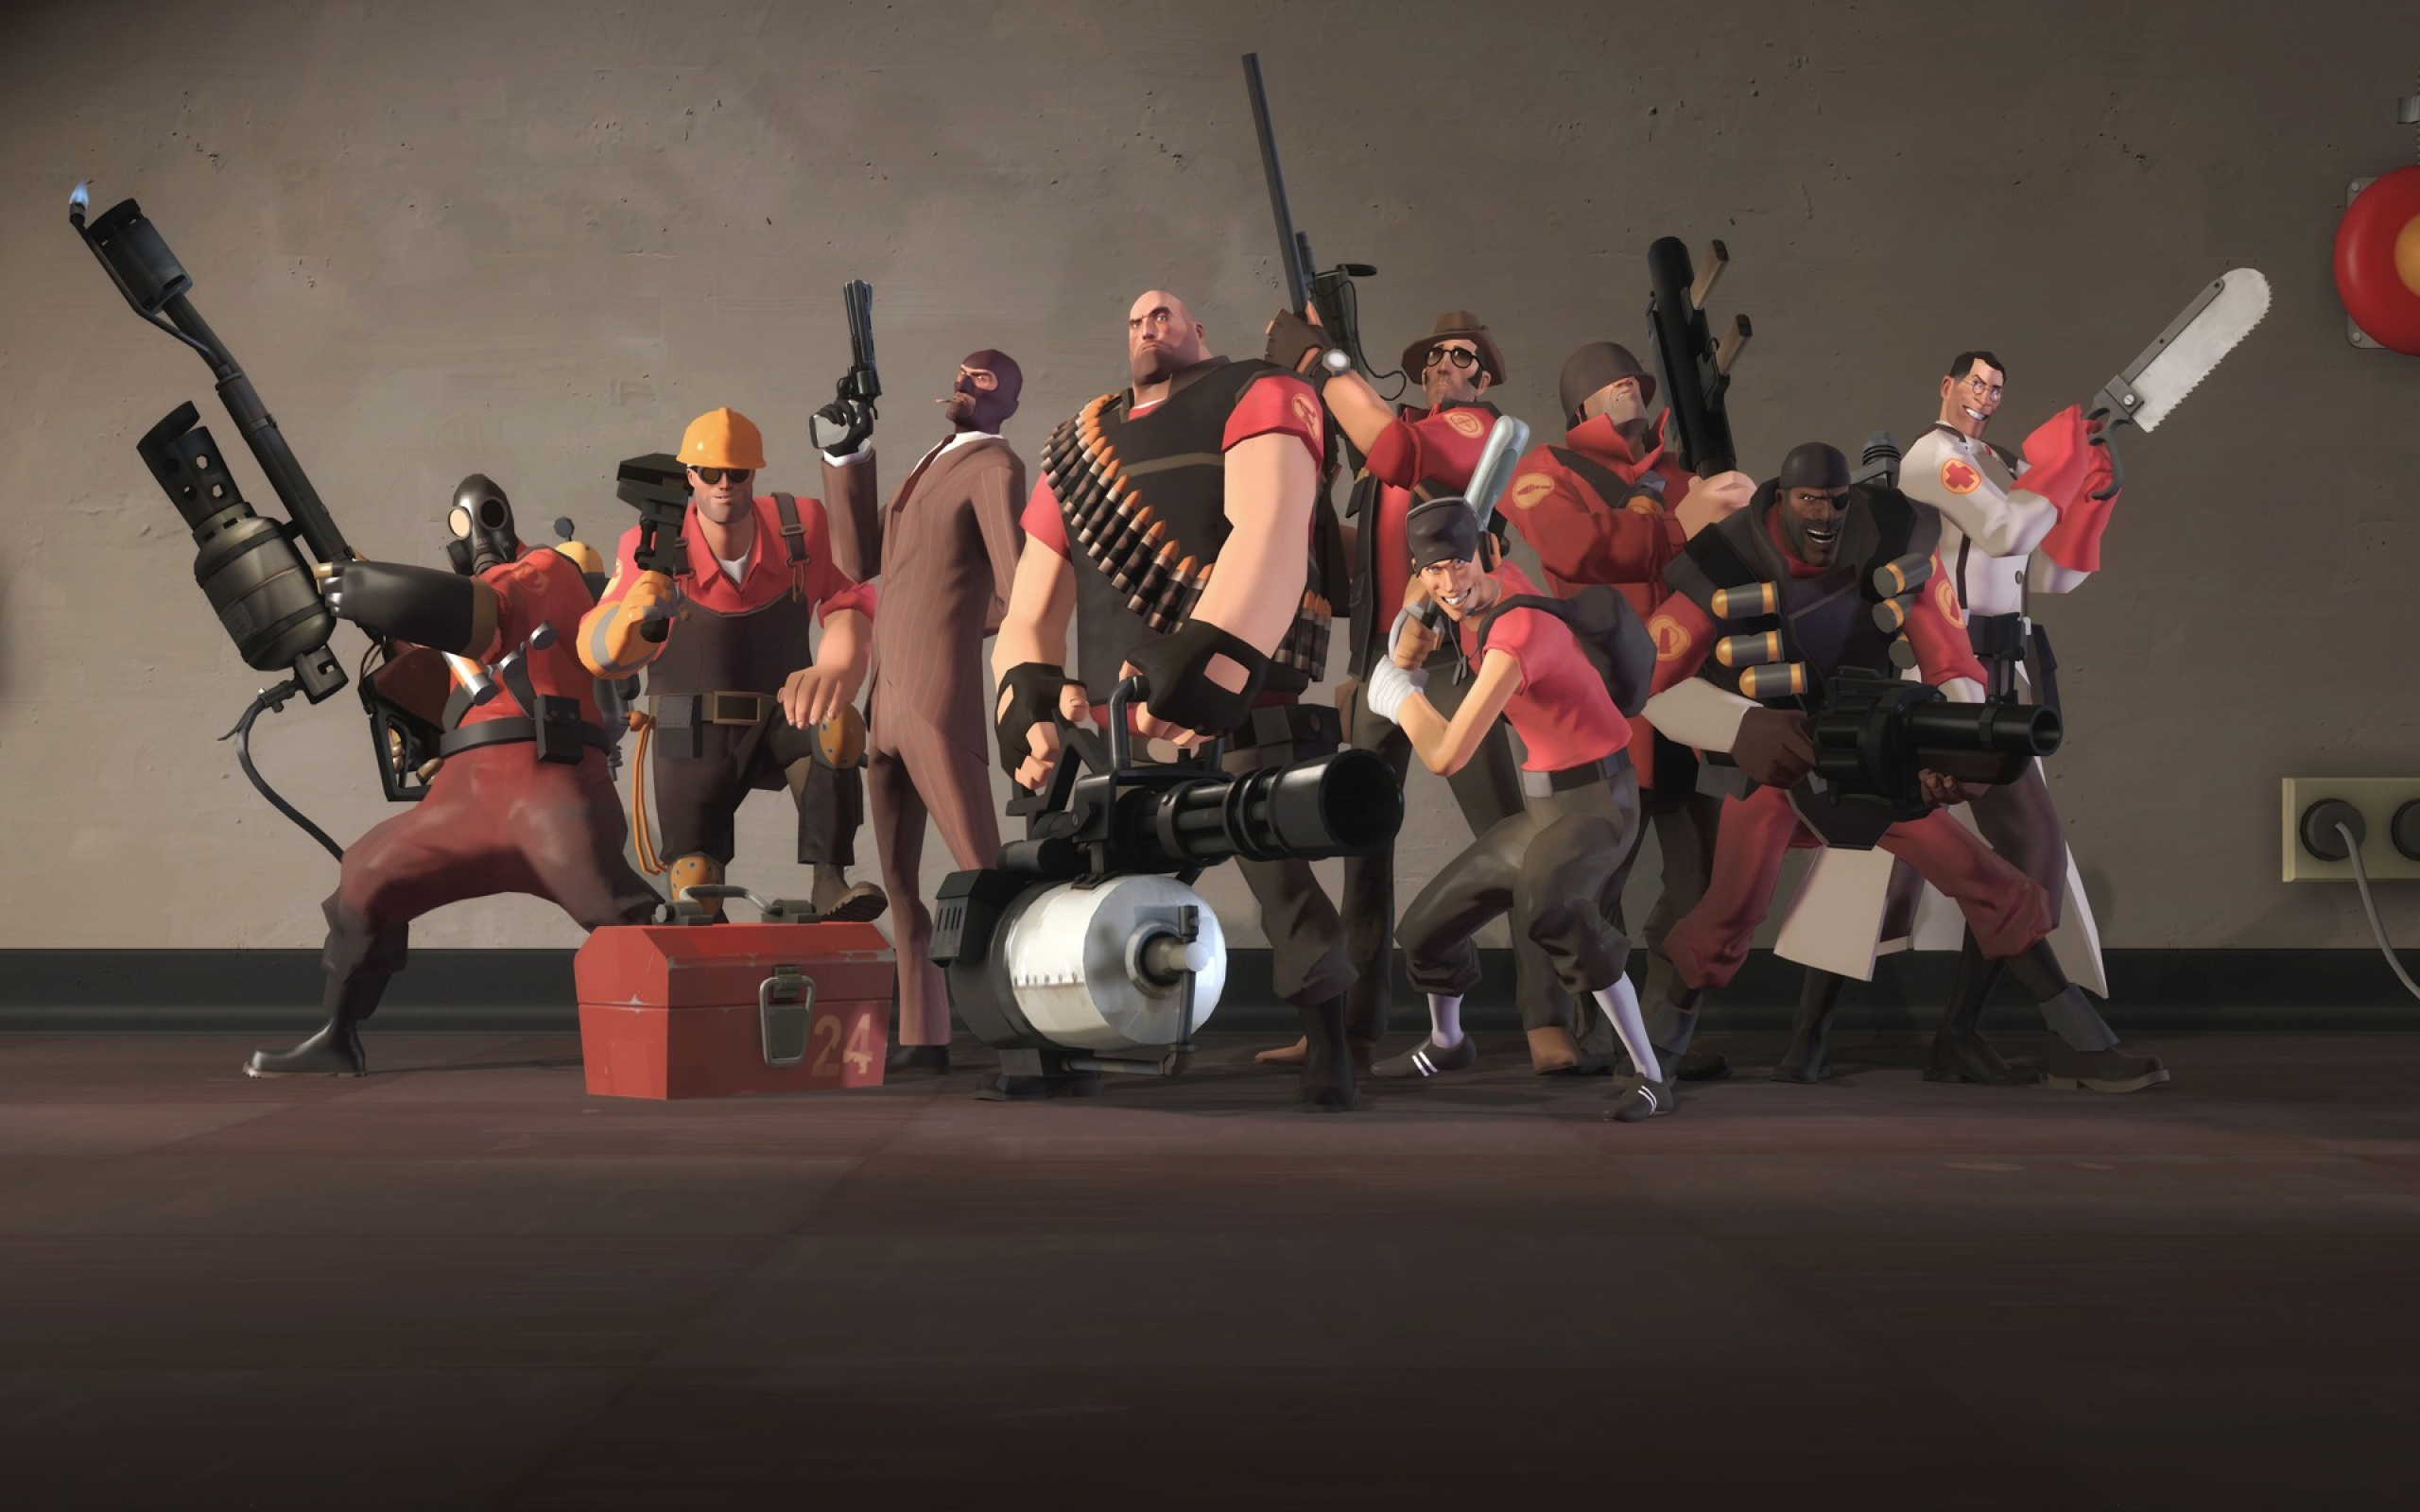 team fortress team fortress - photo #1